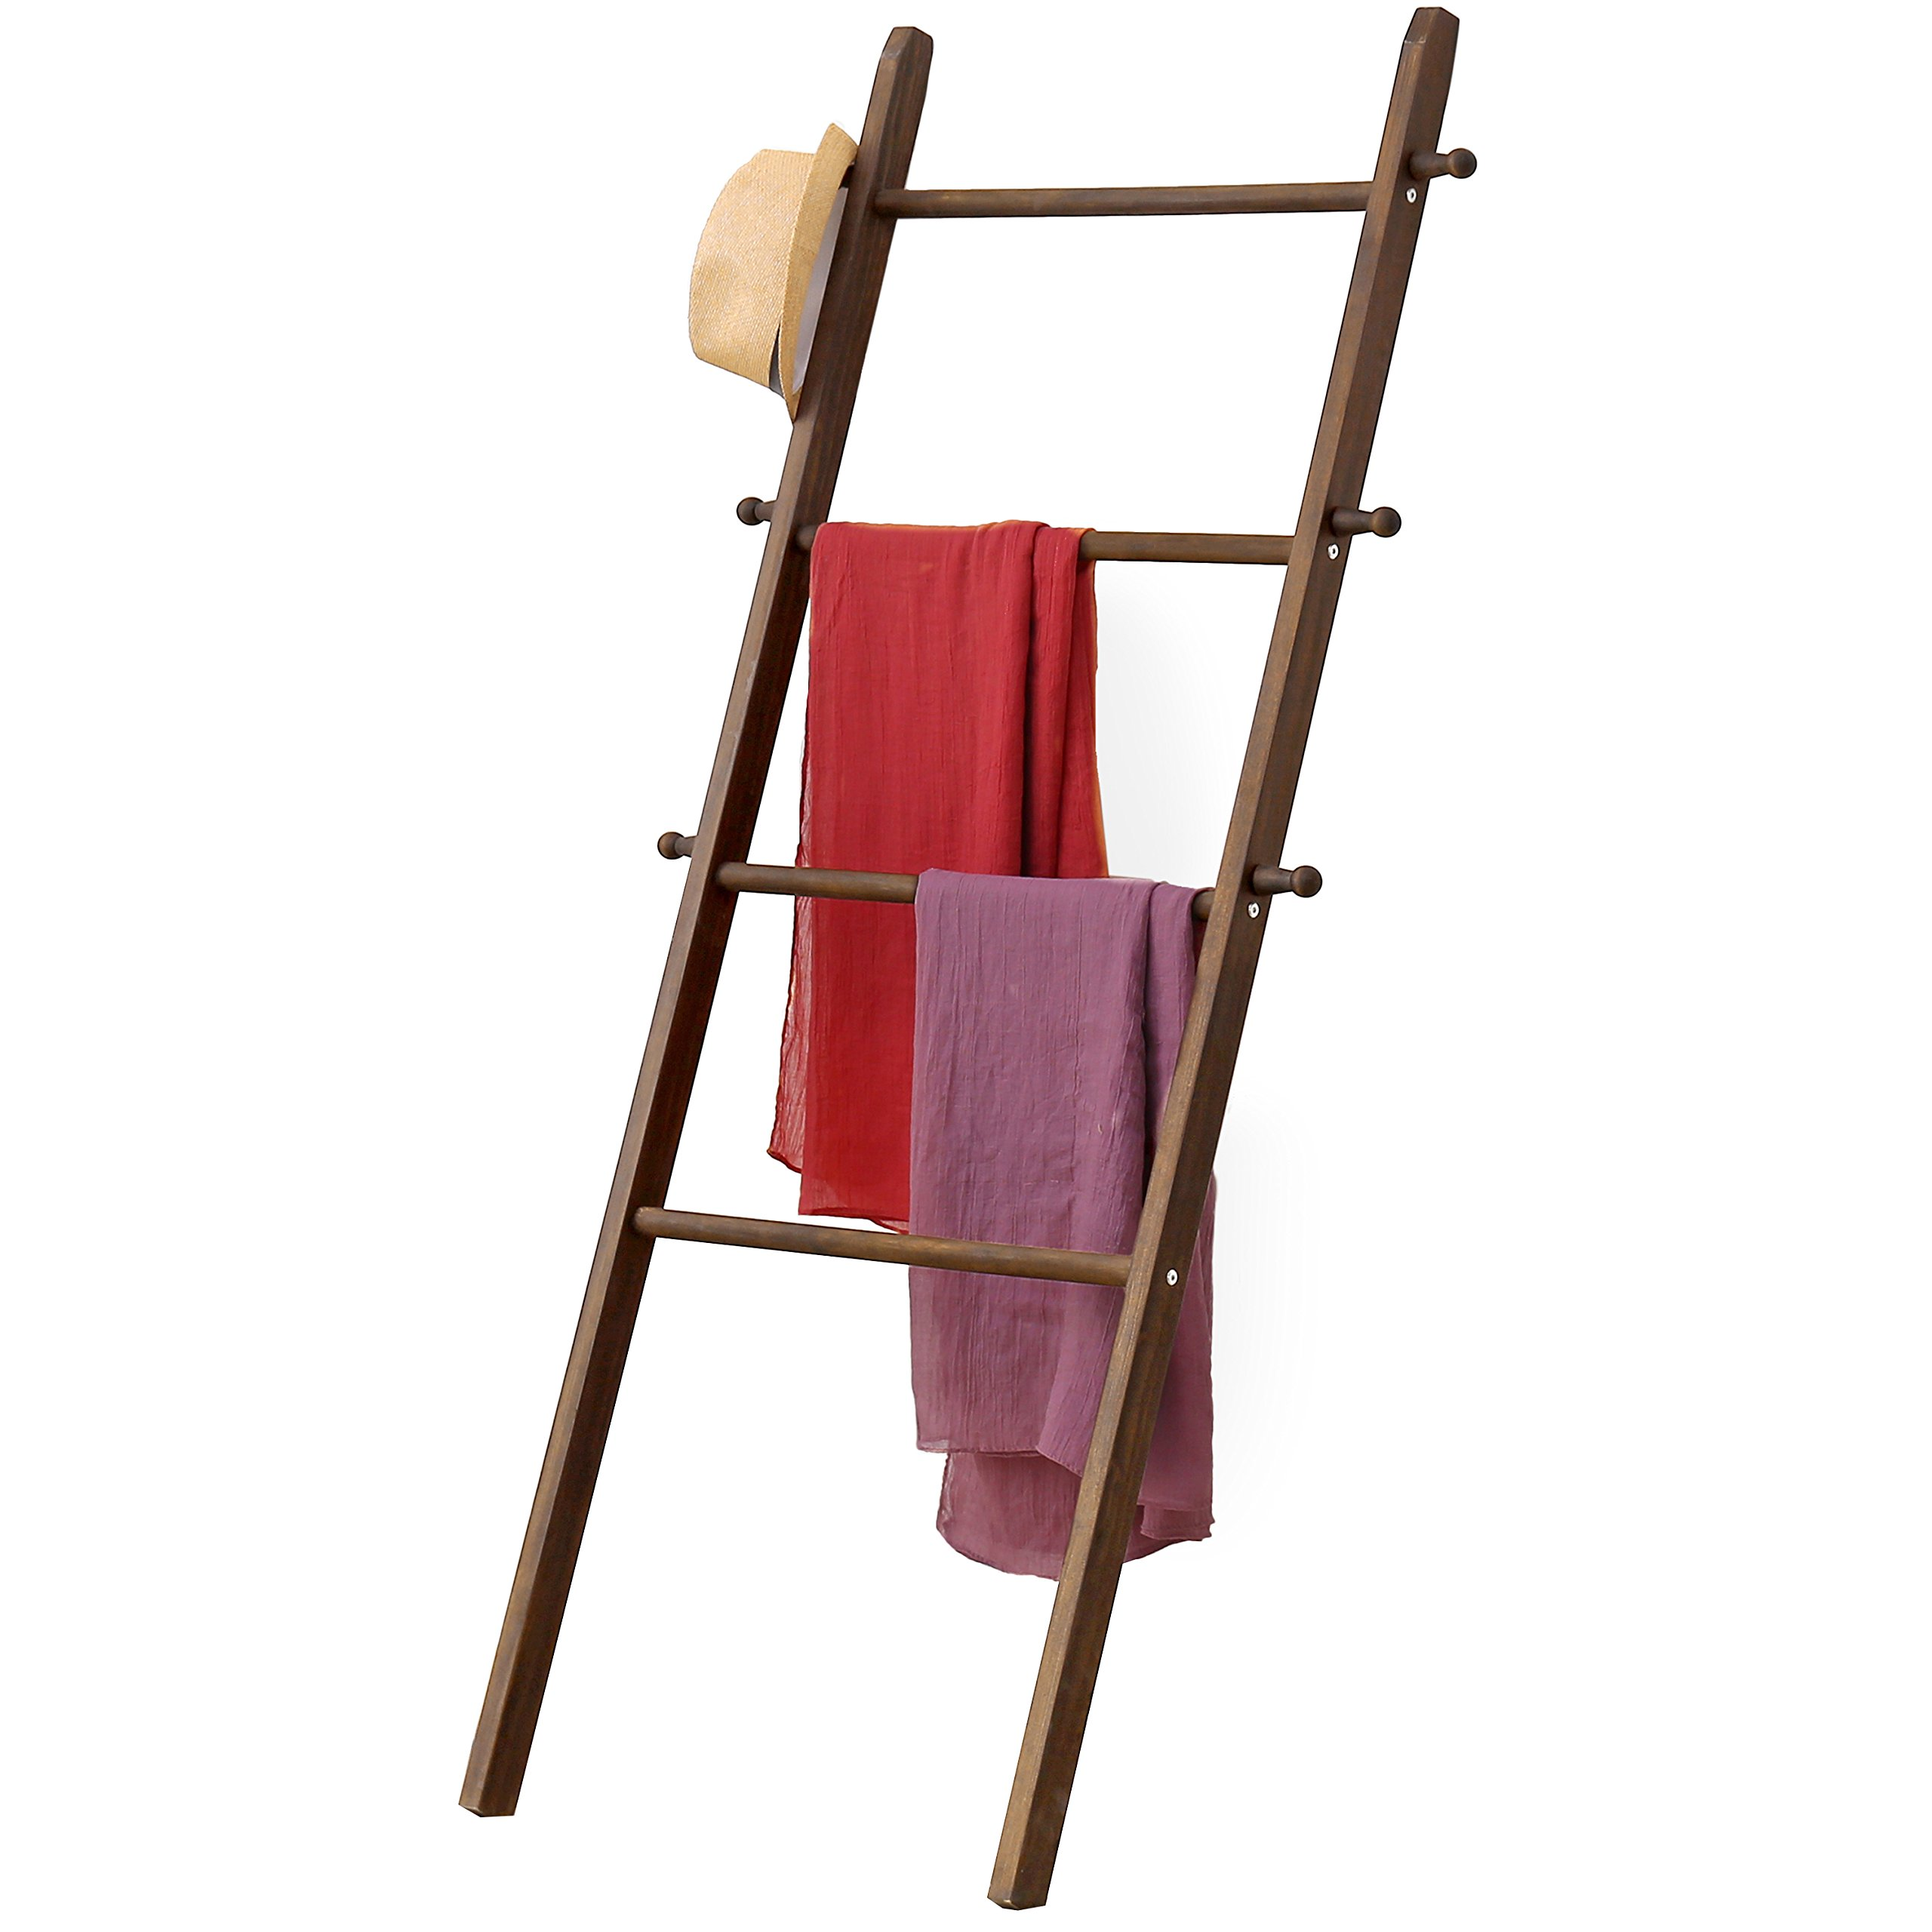 MyGift 5-Foot Wall-Leaning Wood Garment Ladder-Style Wall Rack